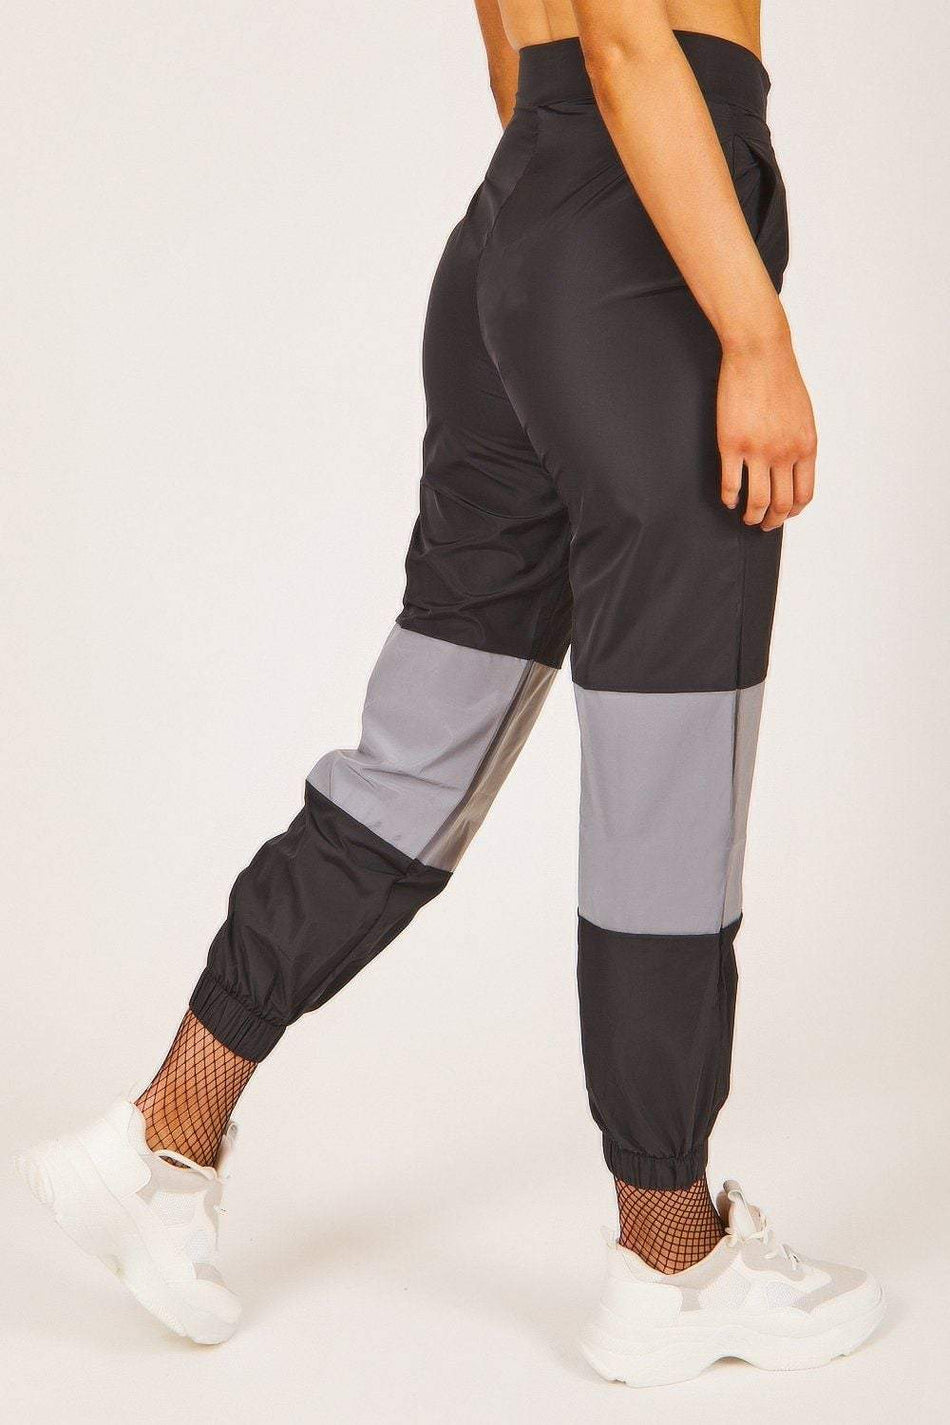 Black Reflective Panel Zip Up Joggers - KATCH ME